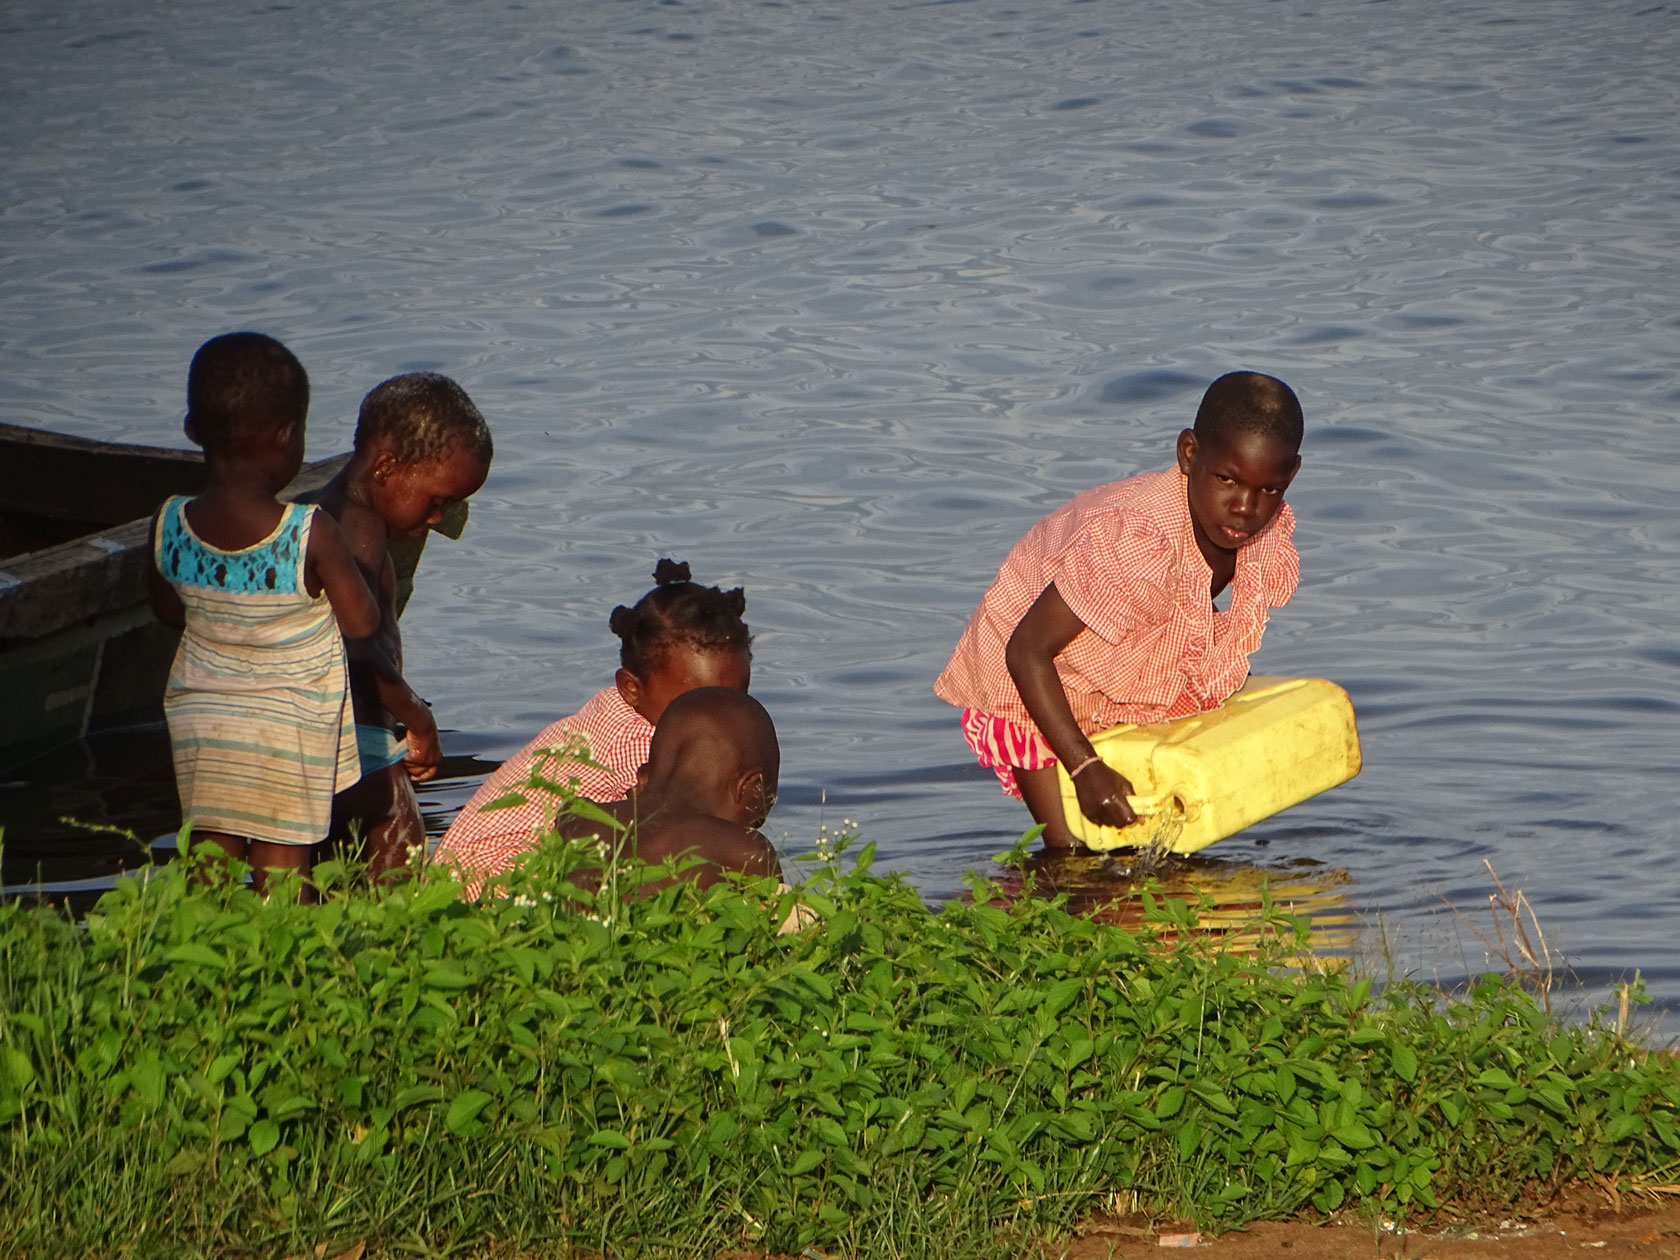 Children fetch water from Lake Victoria